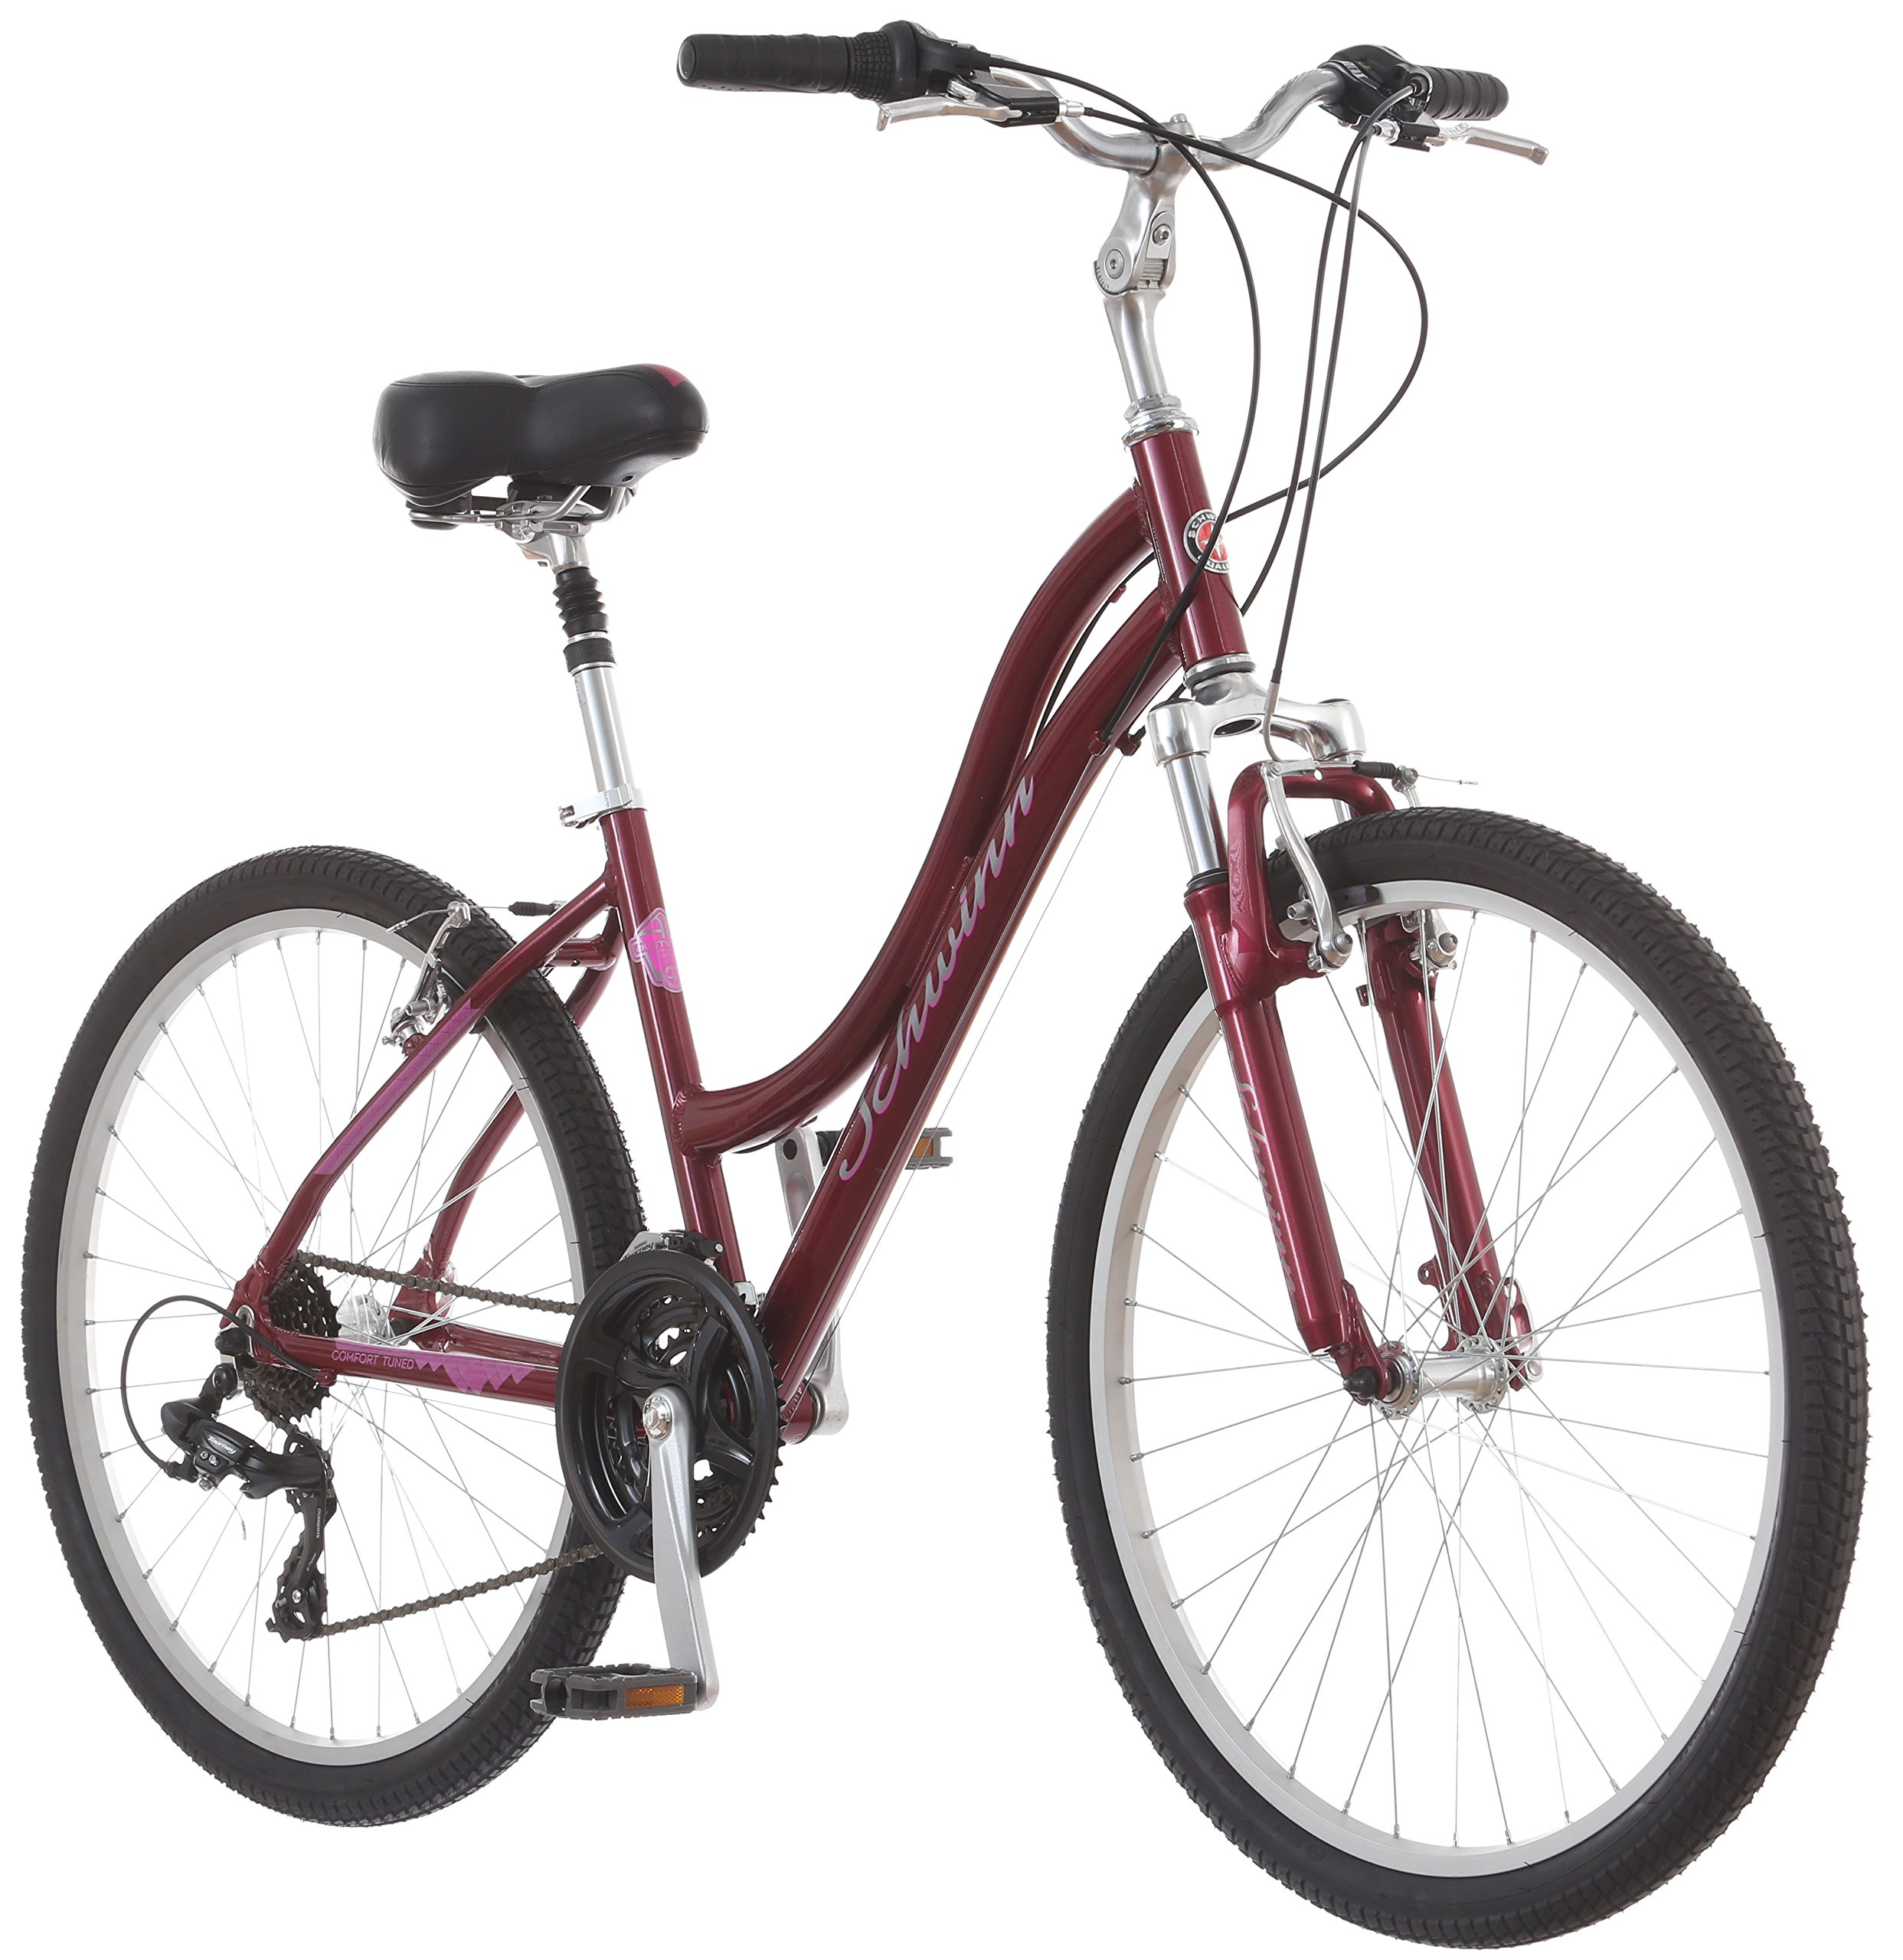 Schwinn Suburban Deluxe Women's Comfort Bicycle 26'' Wheel Bicycle, Red, 16 ''/Small Frame Size